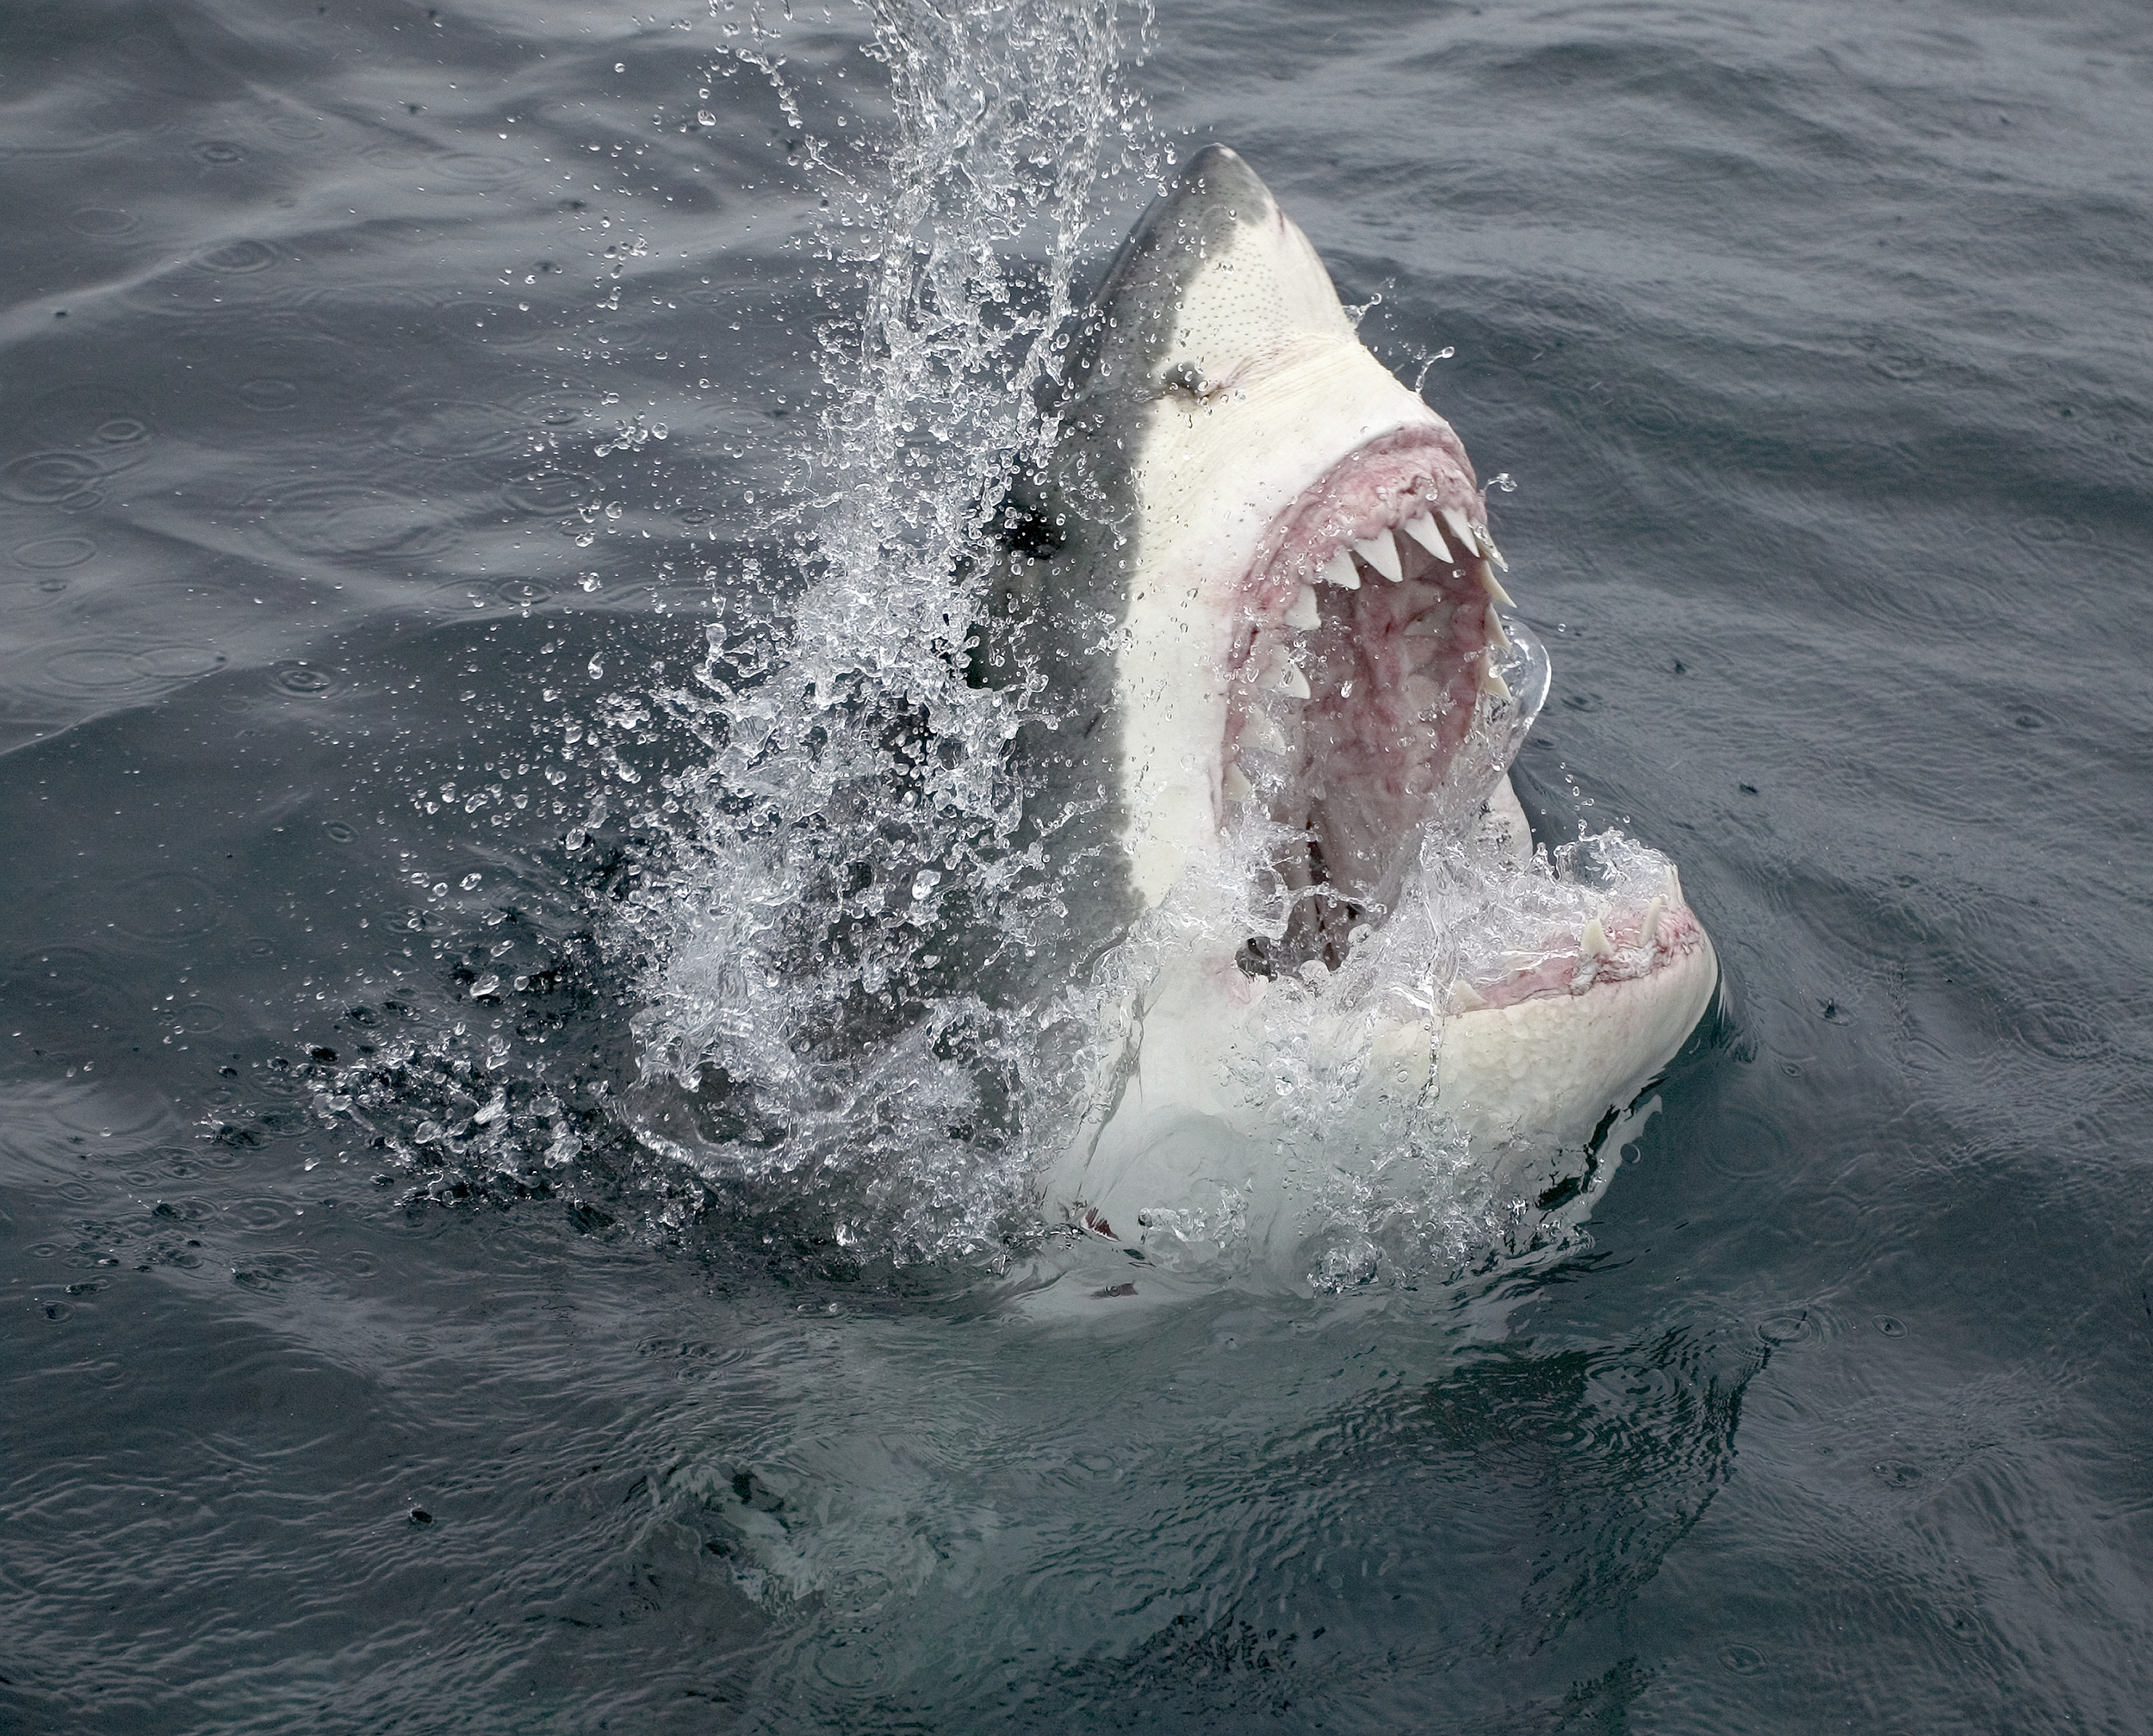 15 Great White Shark Facts That Will Shatter Your Assumptions